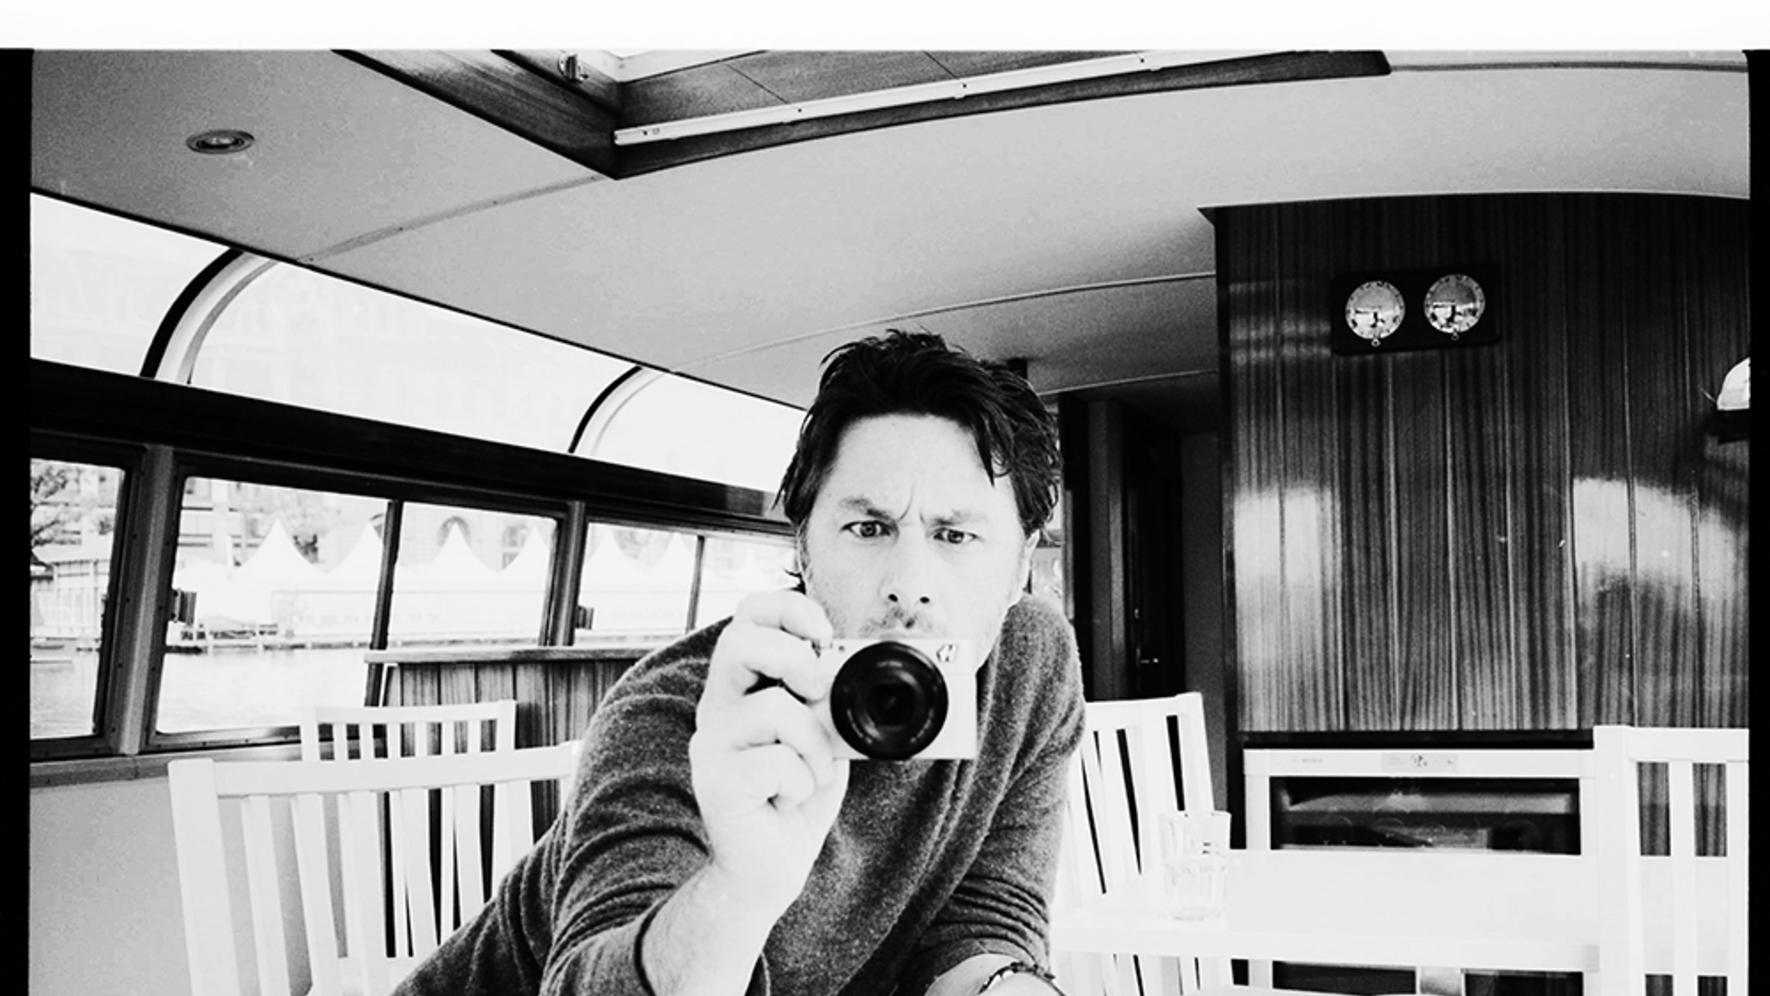 A Personal Note From Zach Braff